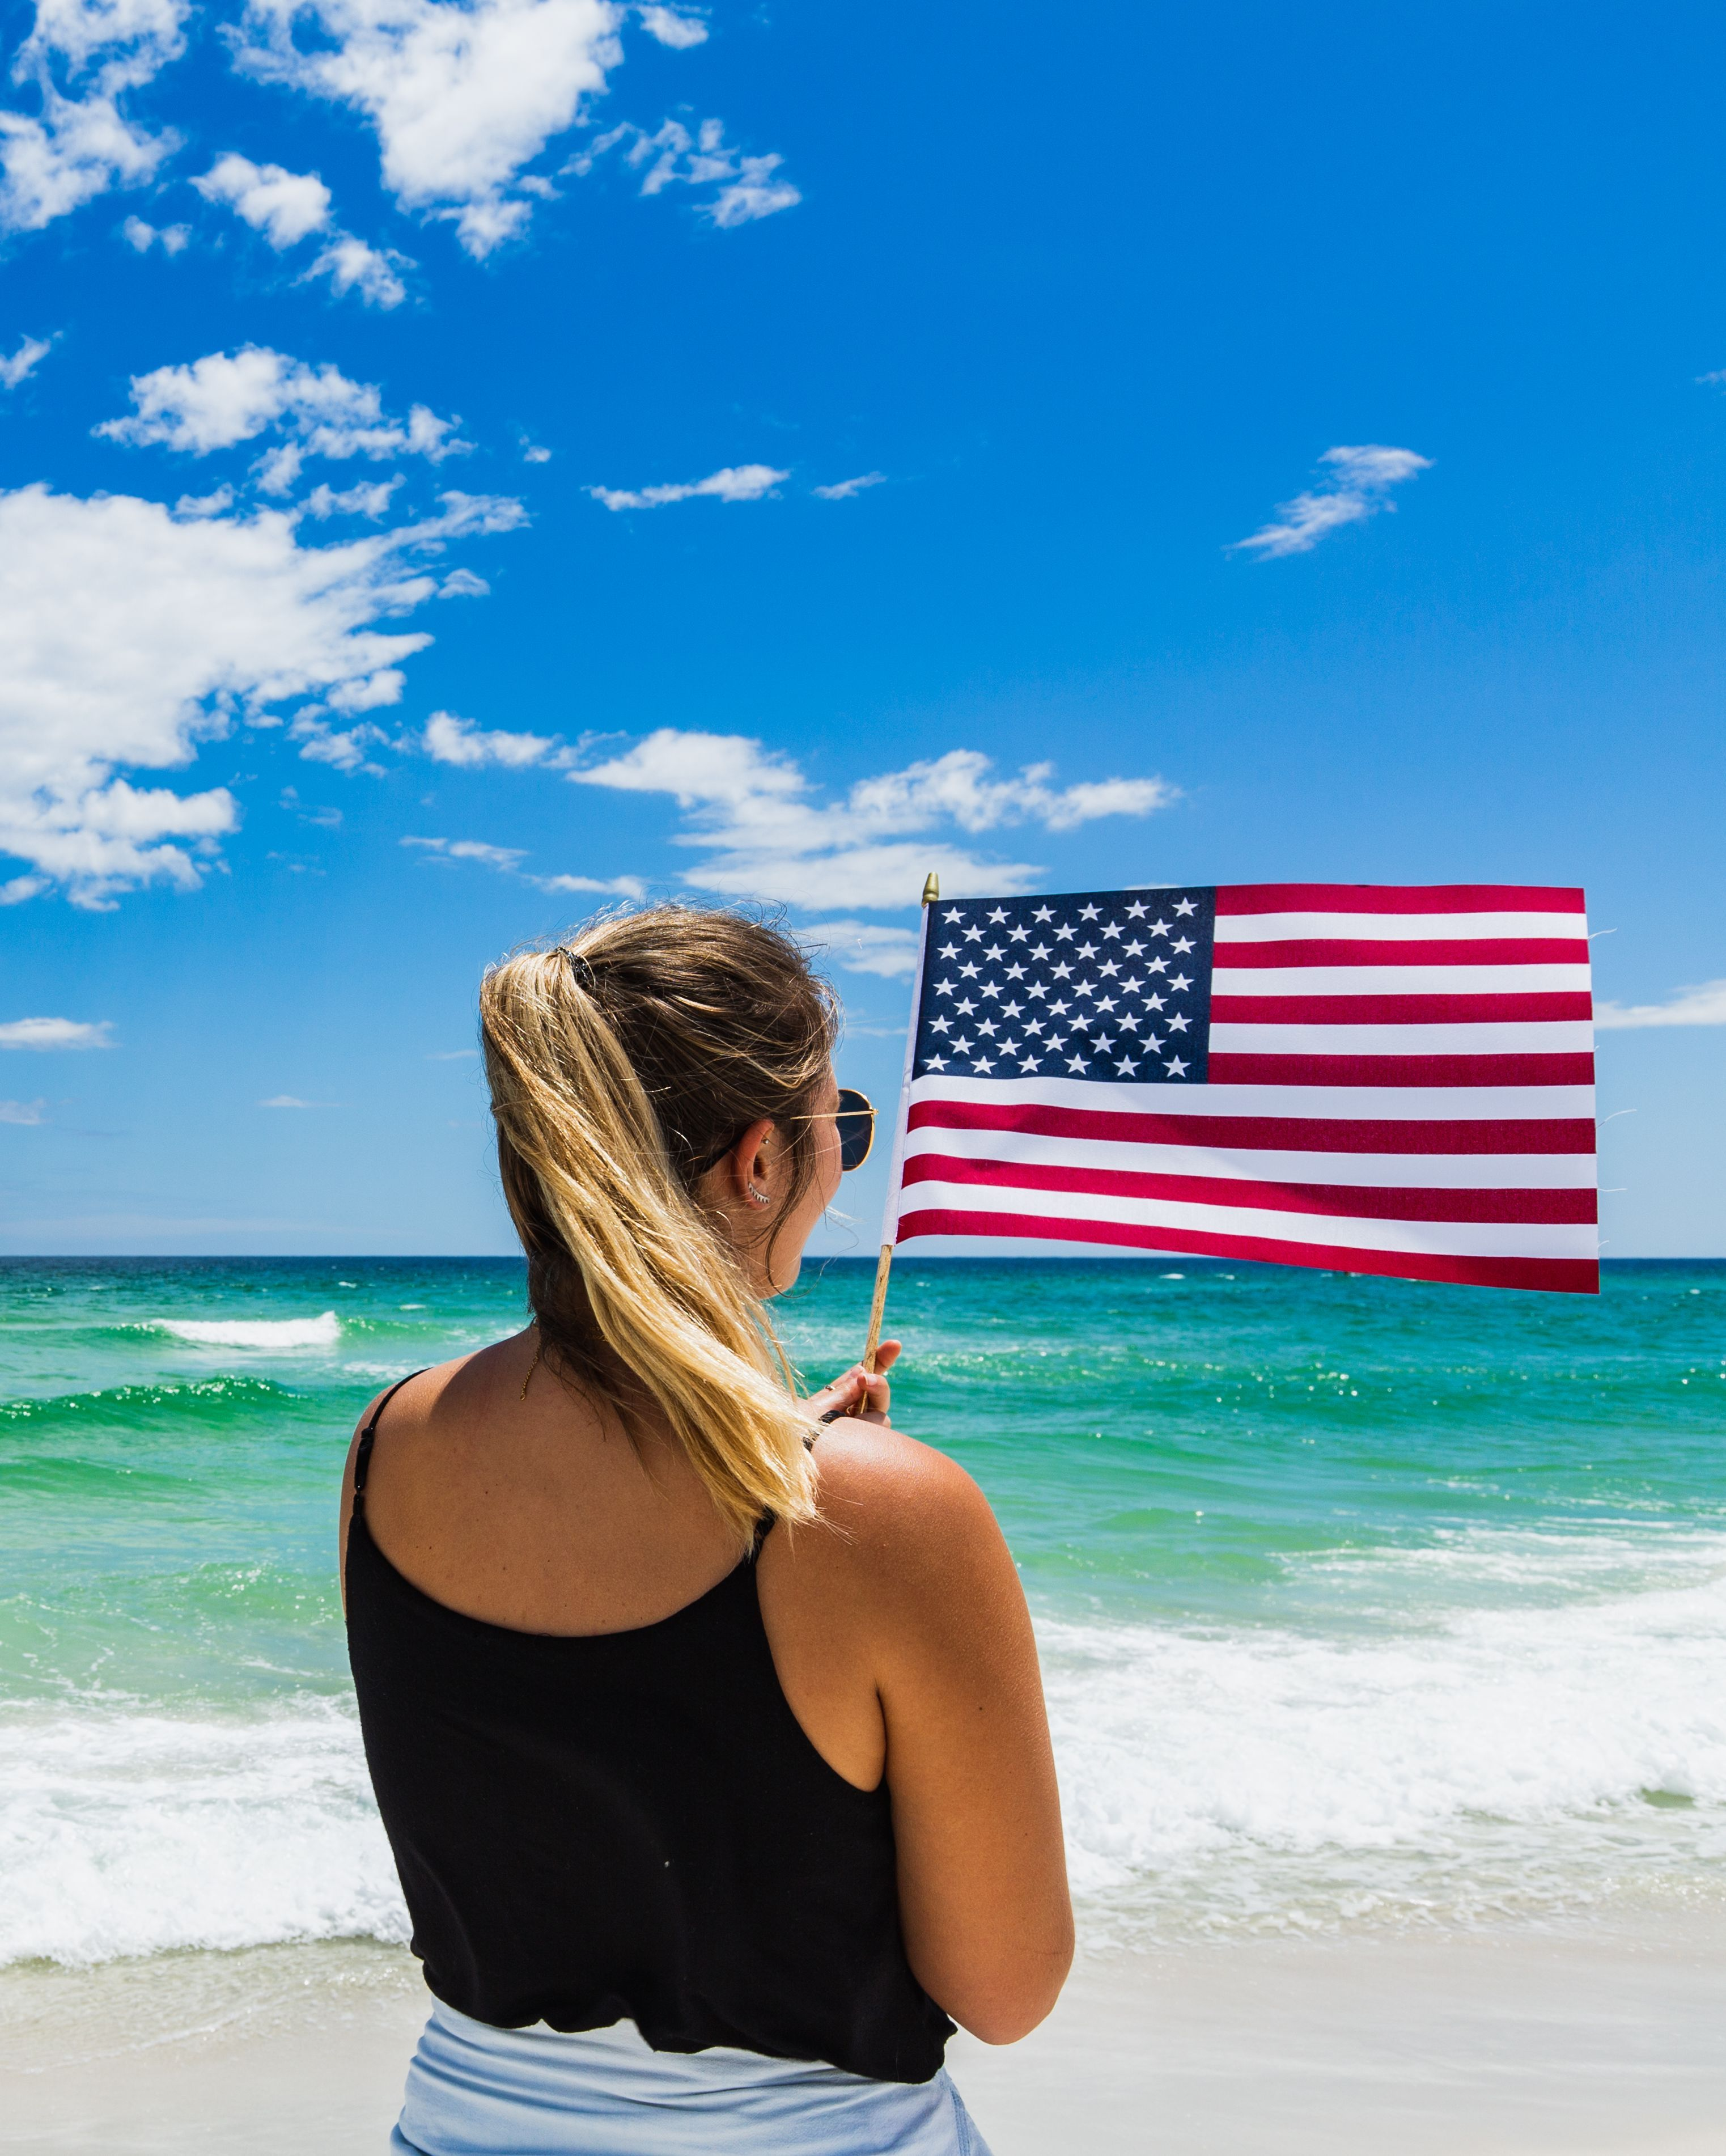 Happy Memorialday To The Land Of The Free Pensacola Beach